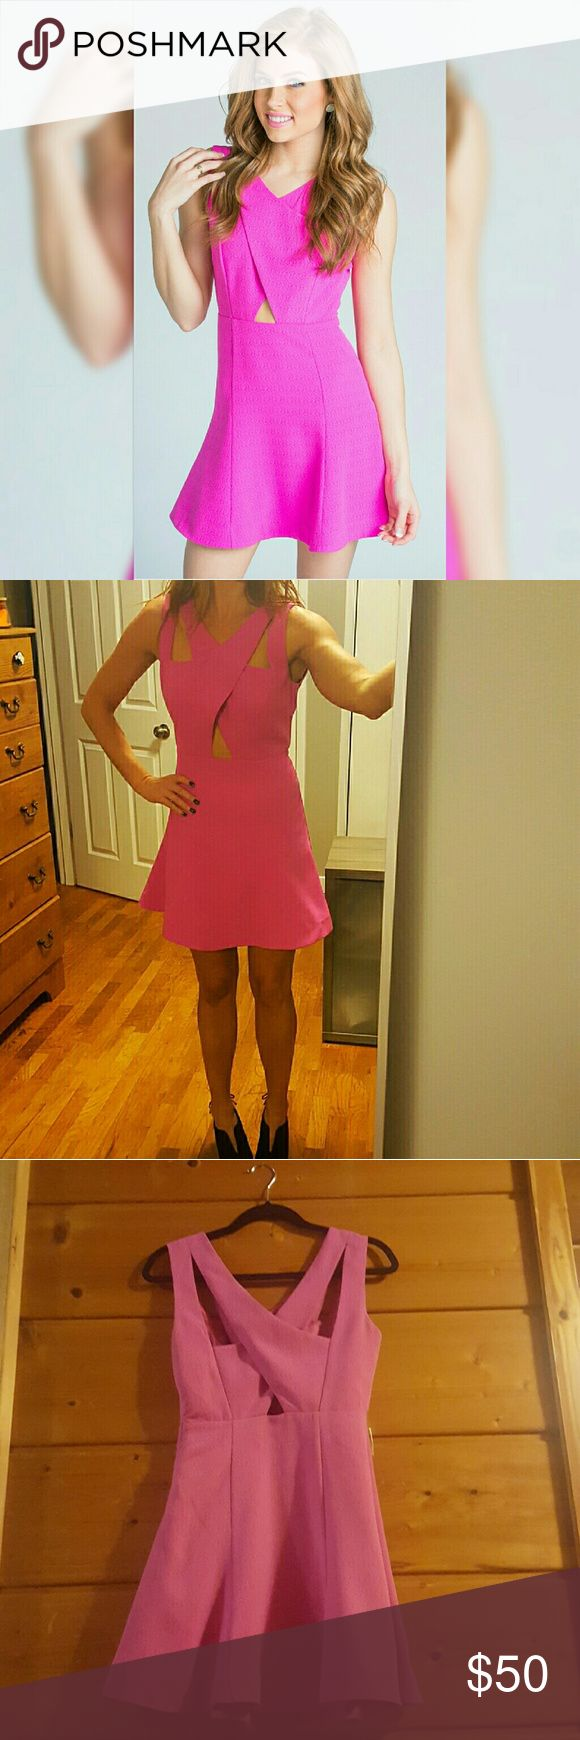 J.O.A. Cupid Fuschia Pink Dress Mini hot pink dress with front and back cutouts. Fully lined. Worn once. Perfect condition. j.o.a. Dresses Mini